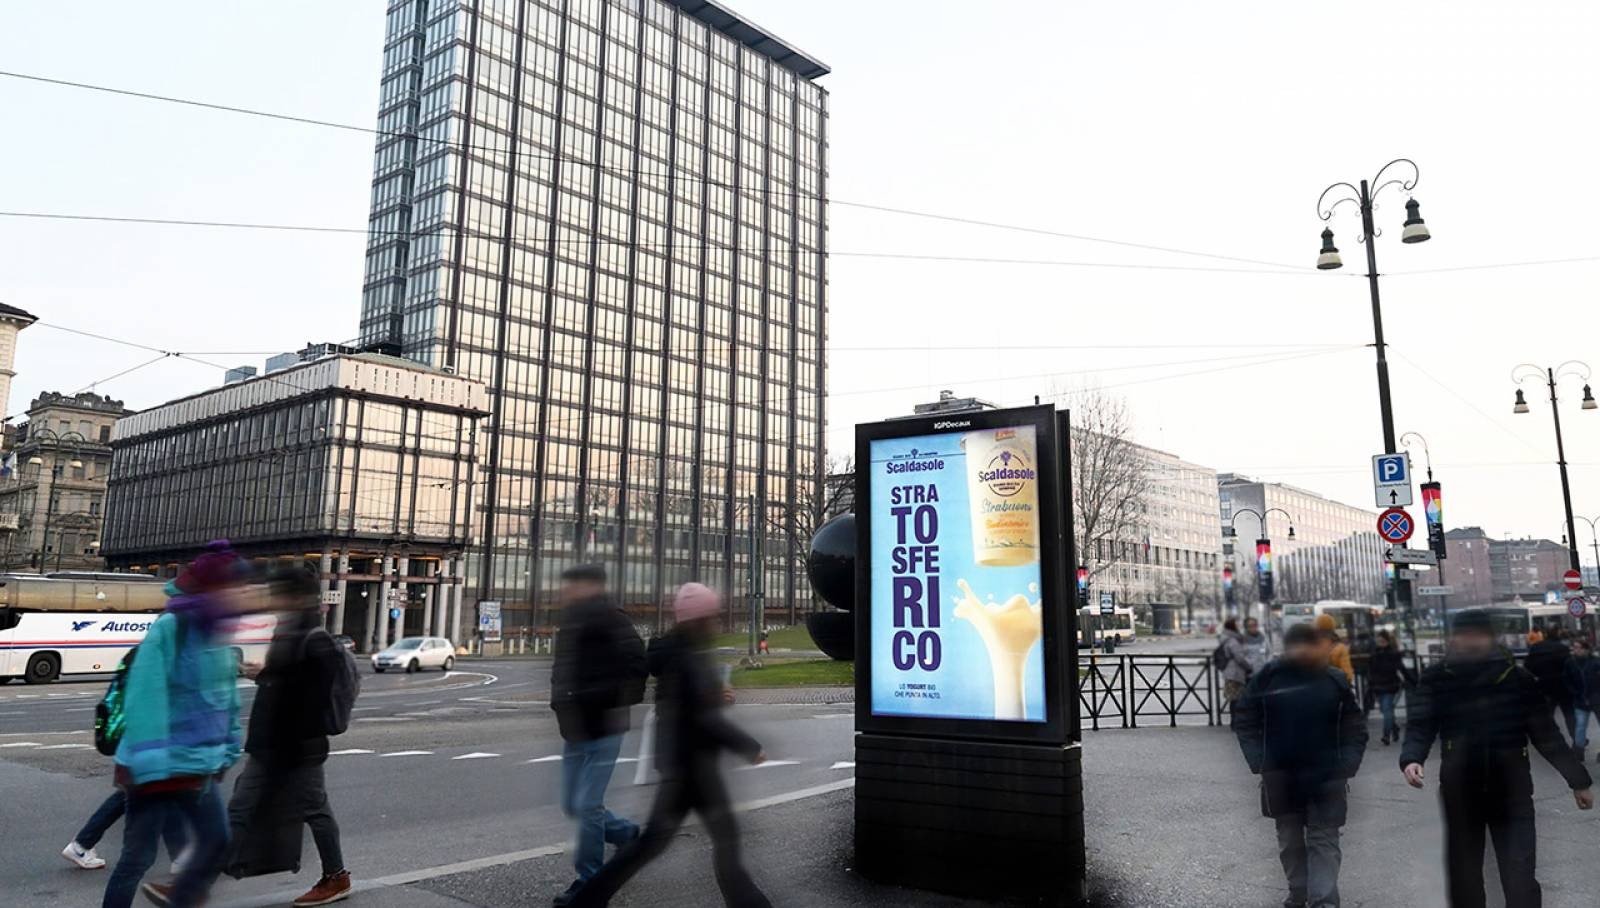 IGPDecaux OOH advertising in Turin MUPI for Scaldasole